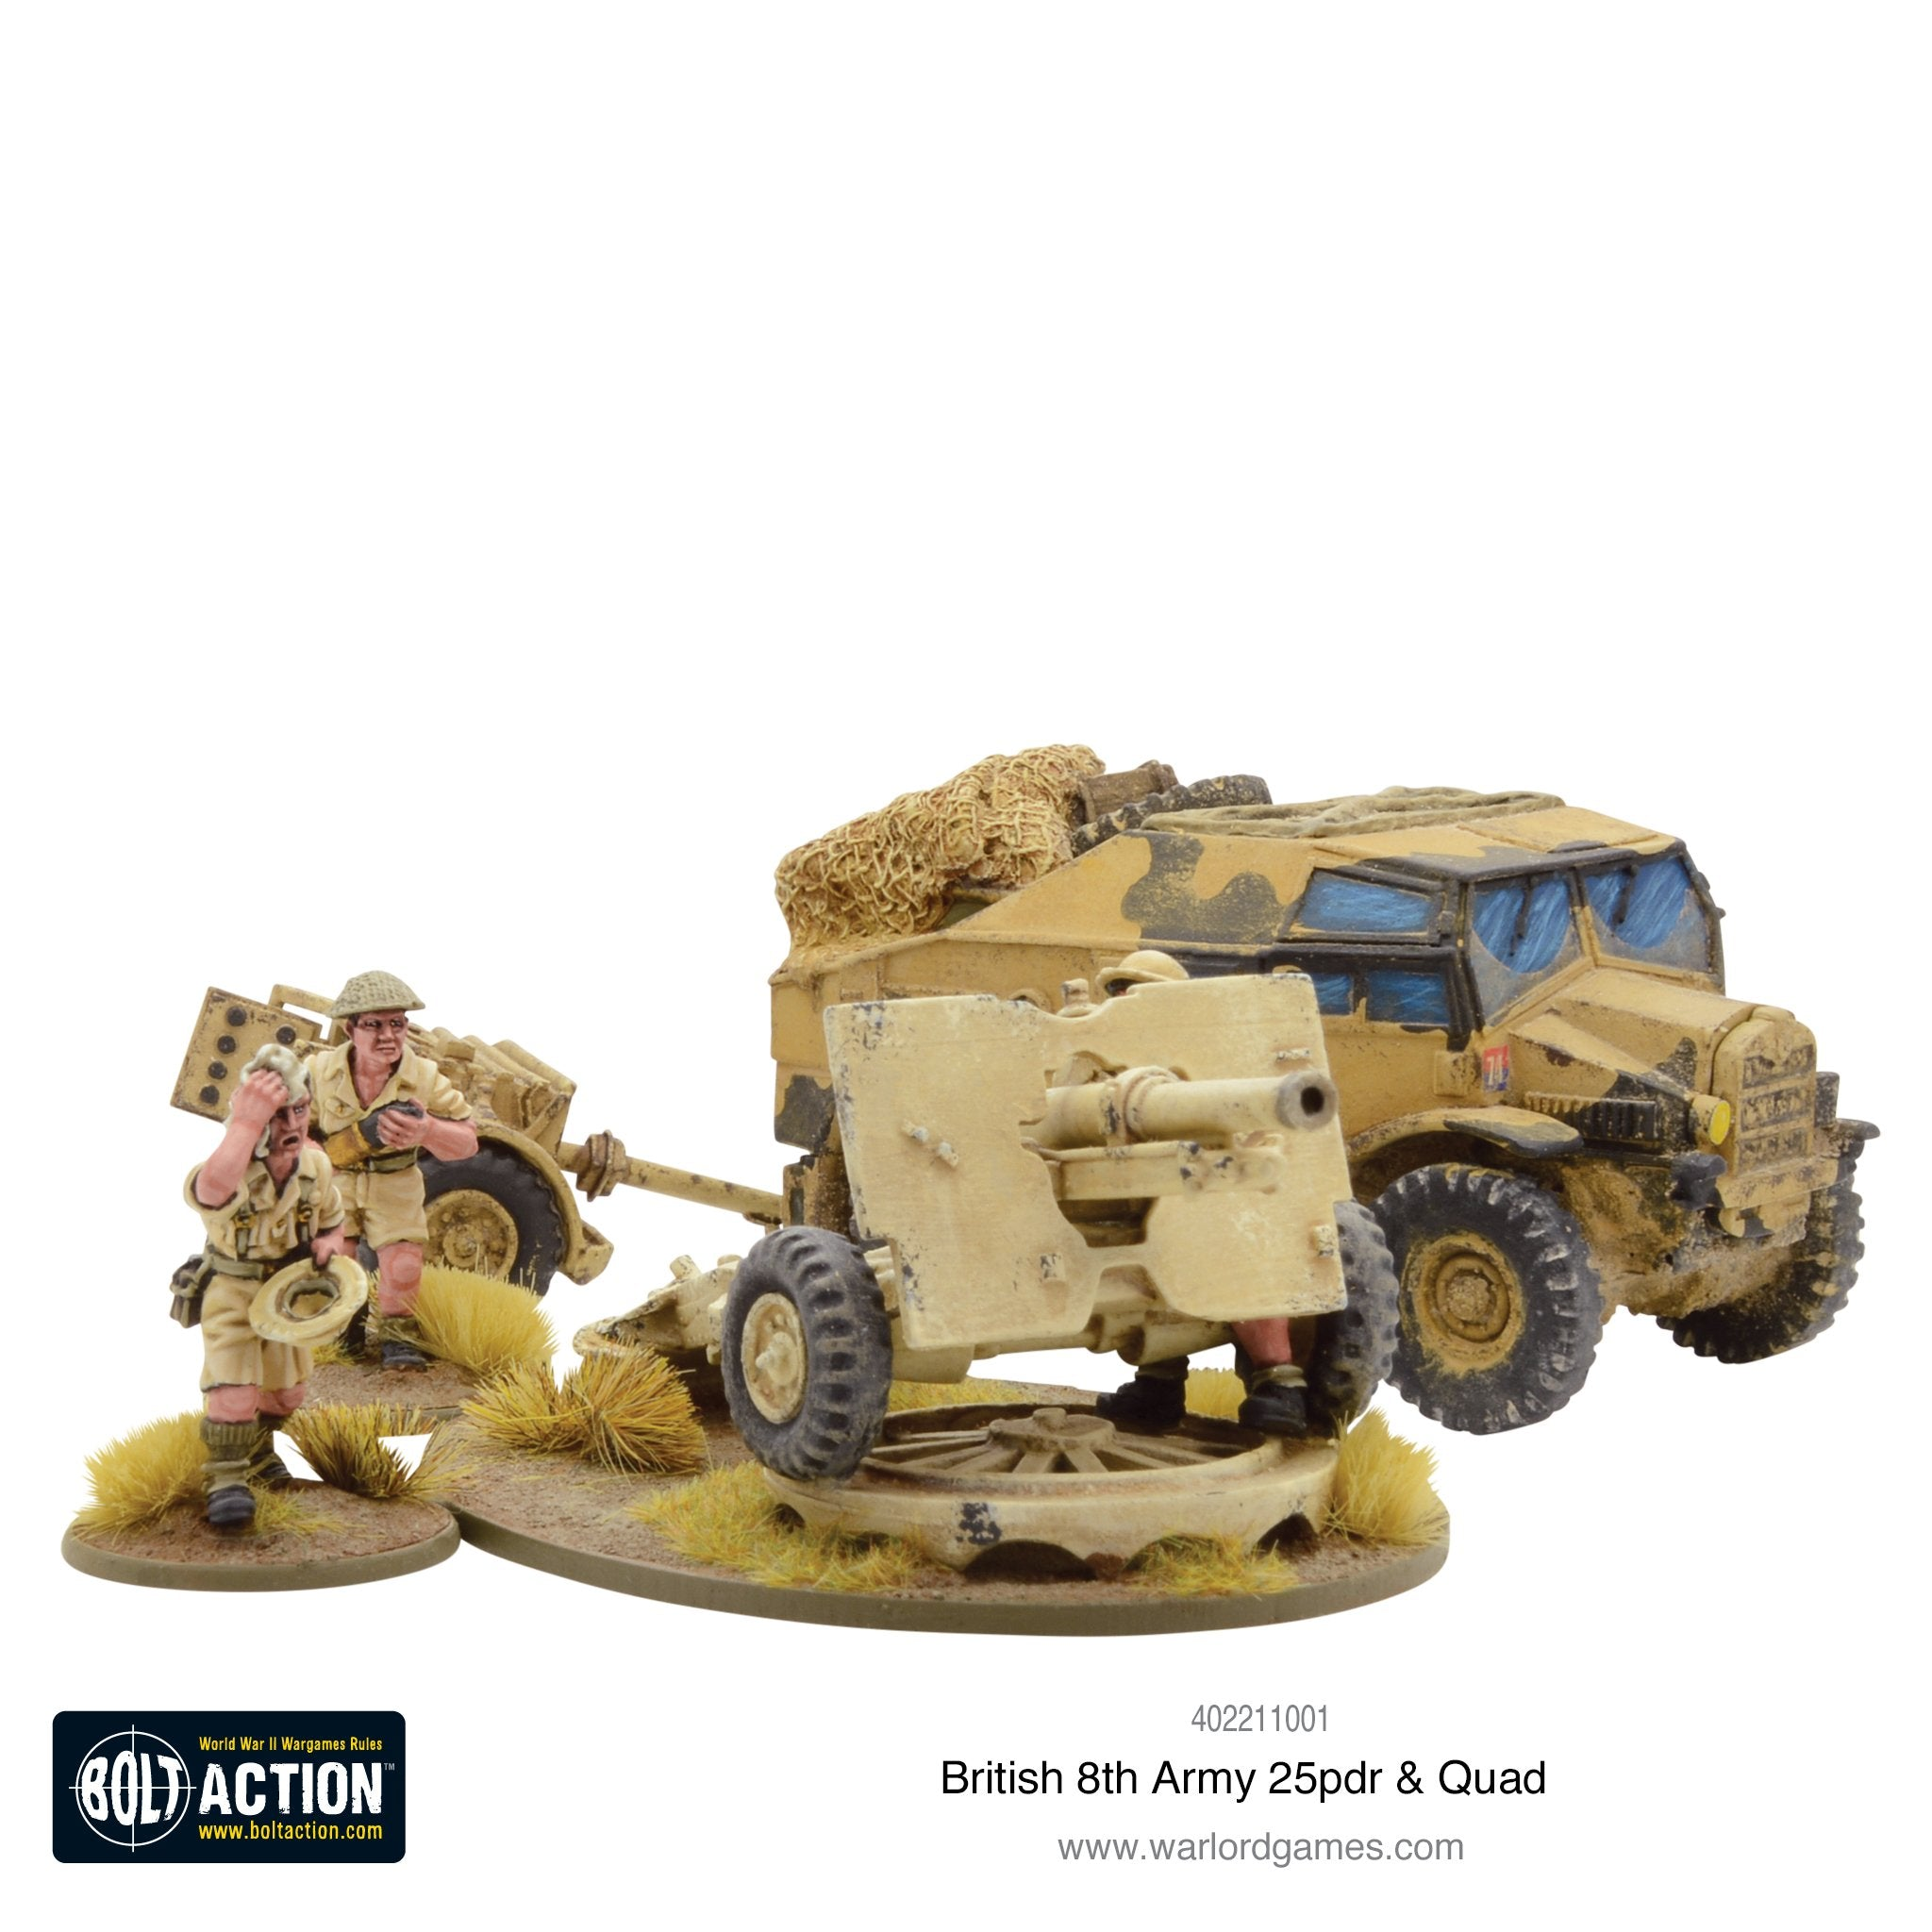 8th Army 25 pounder Light Artillery, Quad & Limber